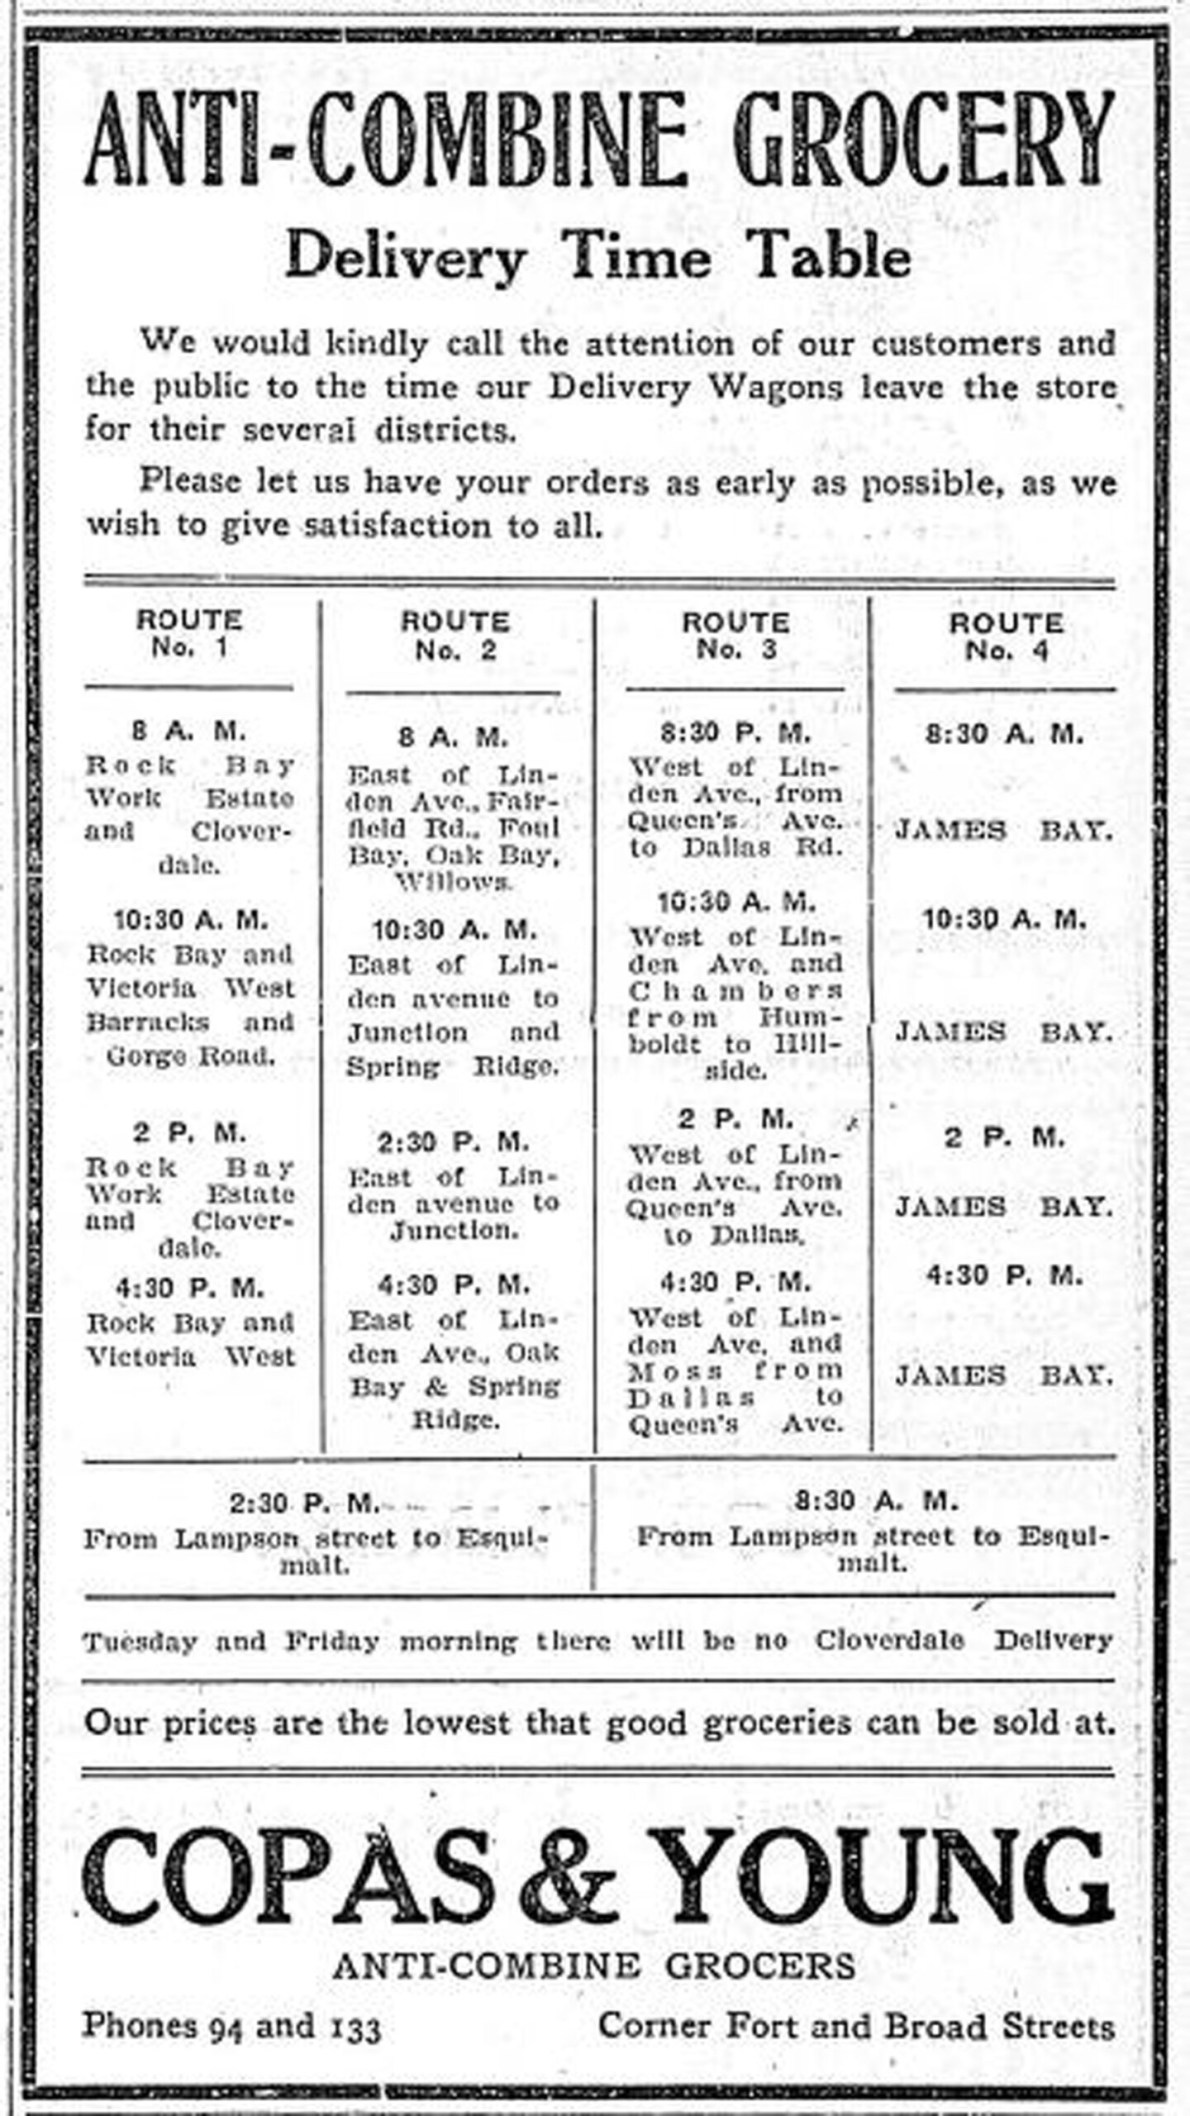 Copas & Young Anti-Combine Grocers, advertisement with grocery delivery schedules, 1909. Copas & Young was in the Fell Building at the intersection of Fort Street and Broad Street (Victoria Online Sightseeing collection)